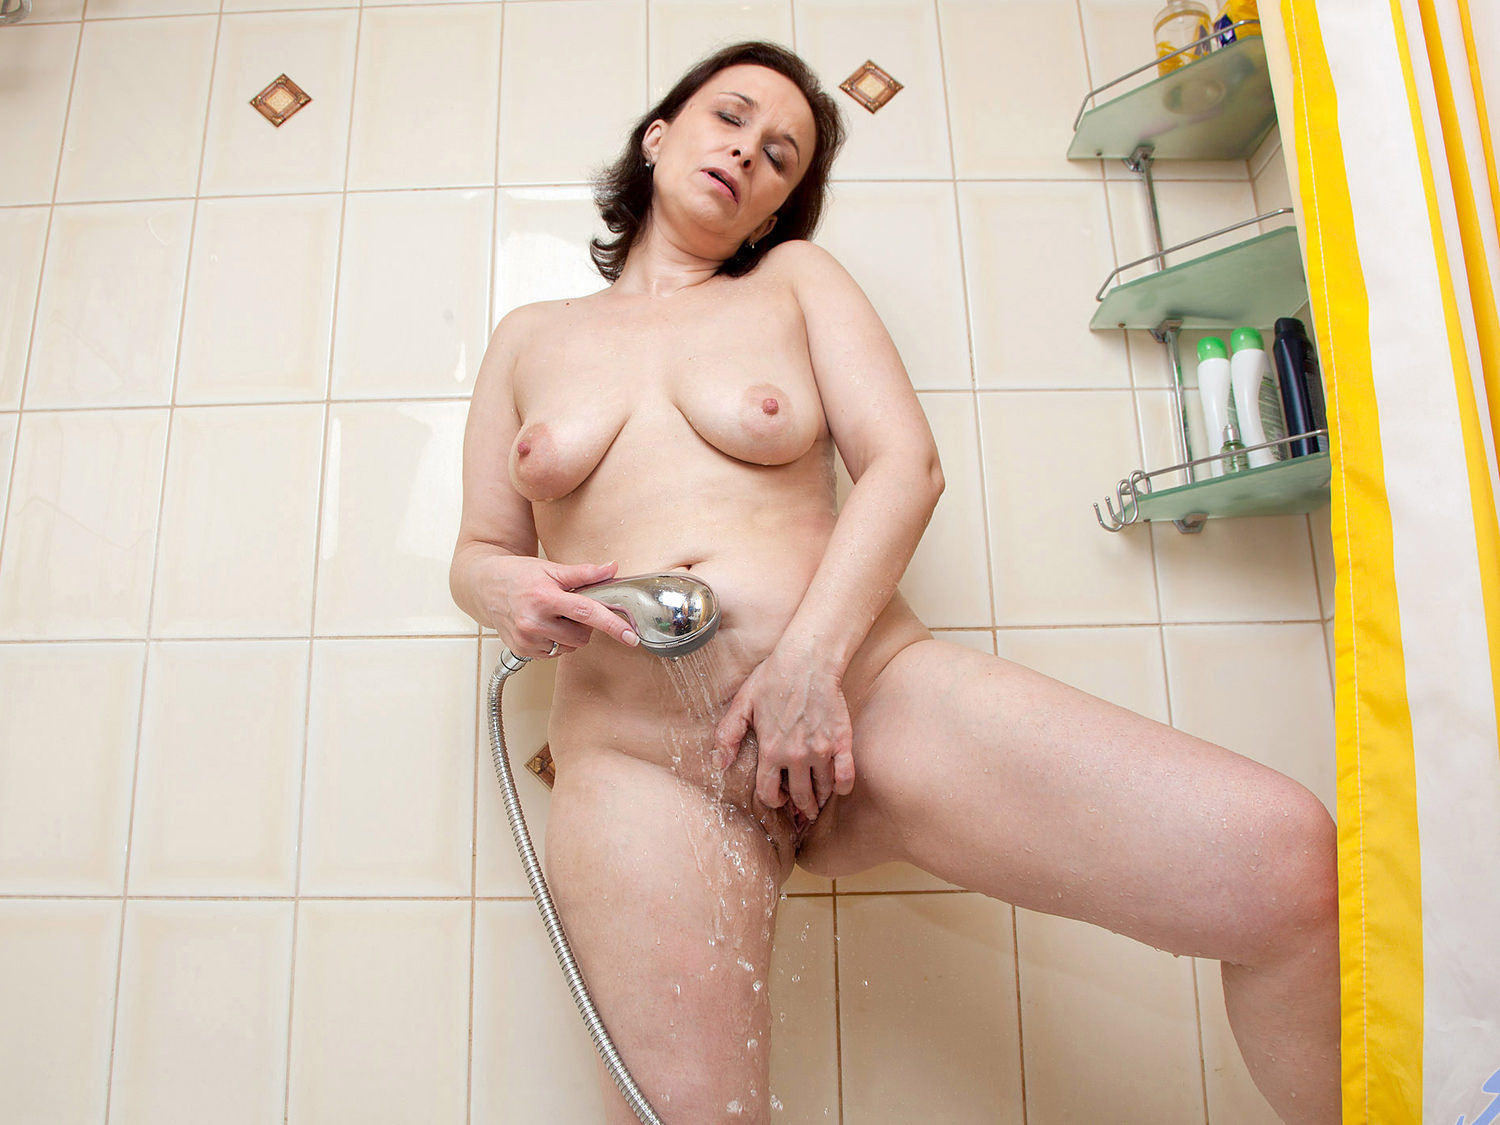 Sexy play shower